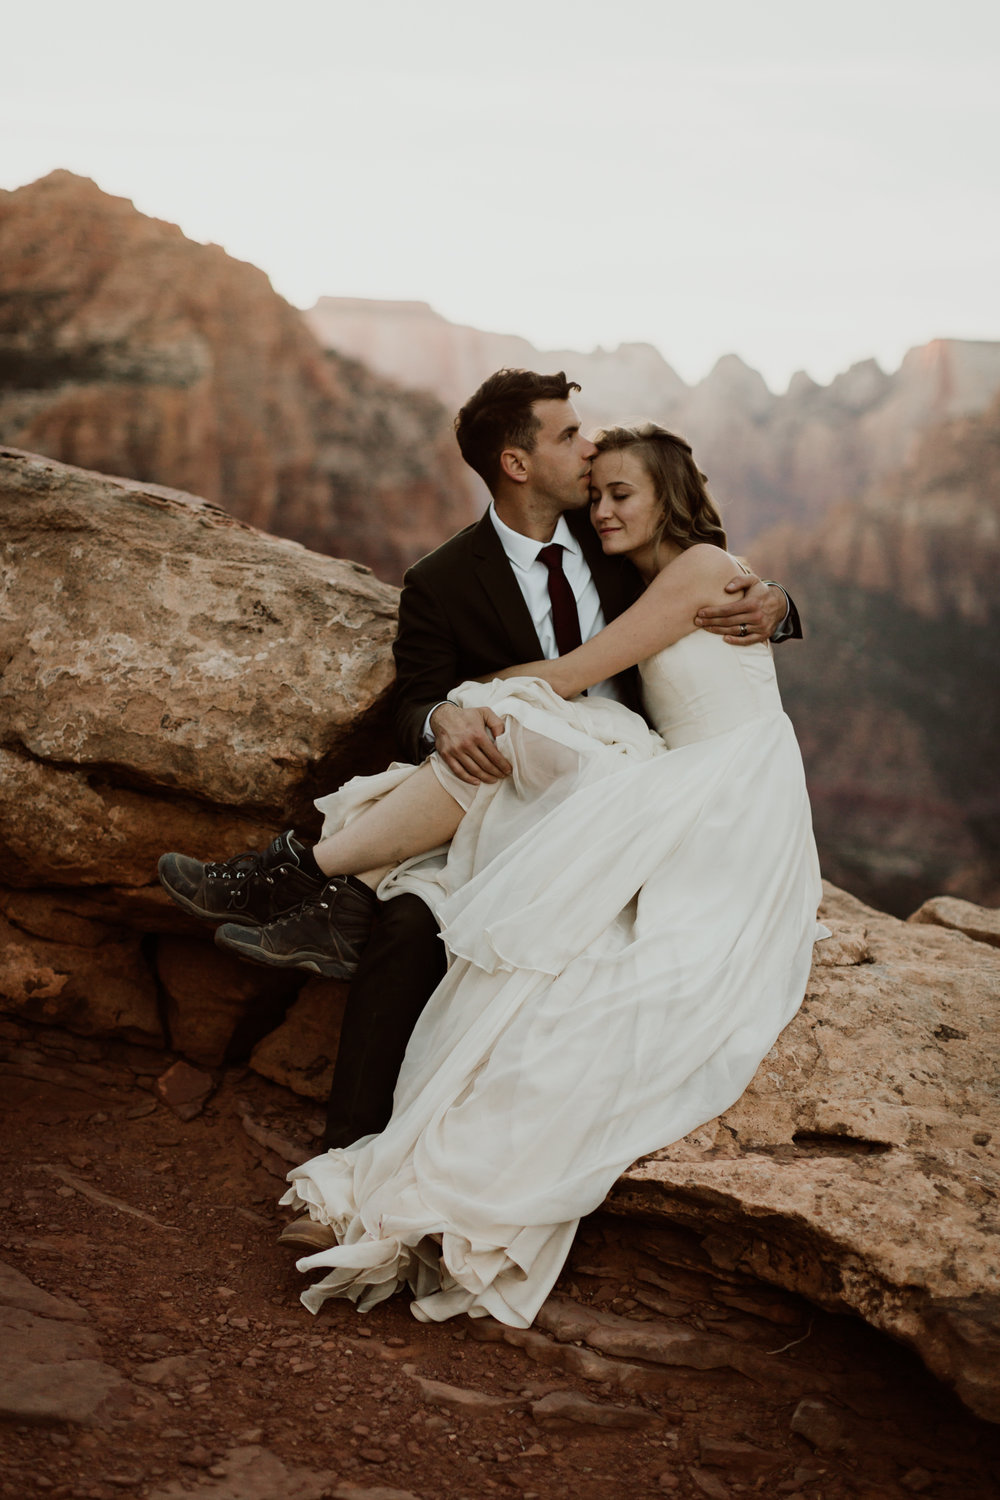 zion-national-park-wedding-123.jpg